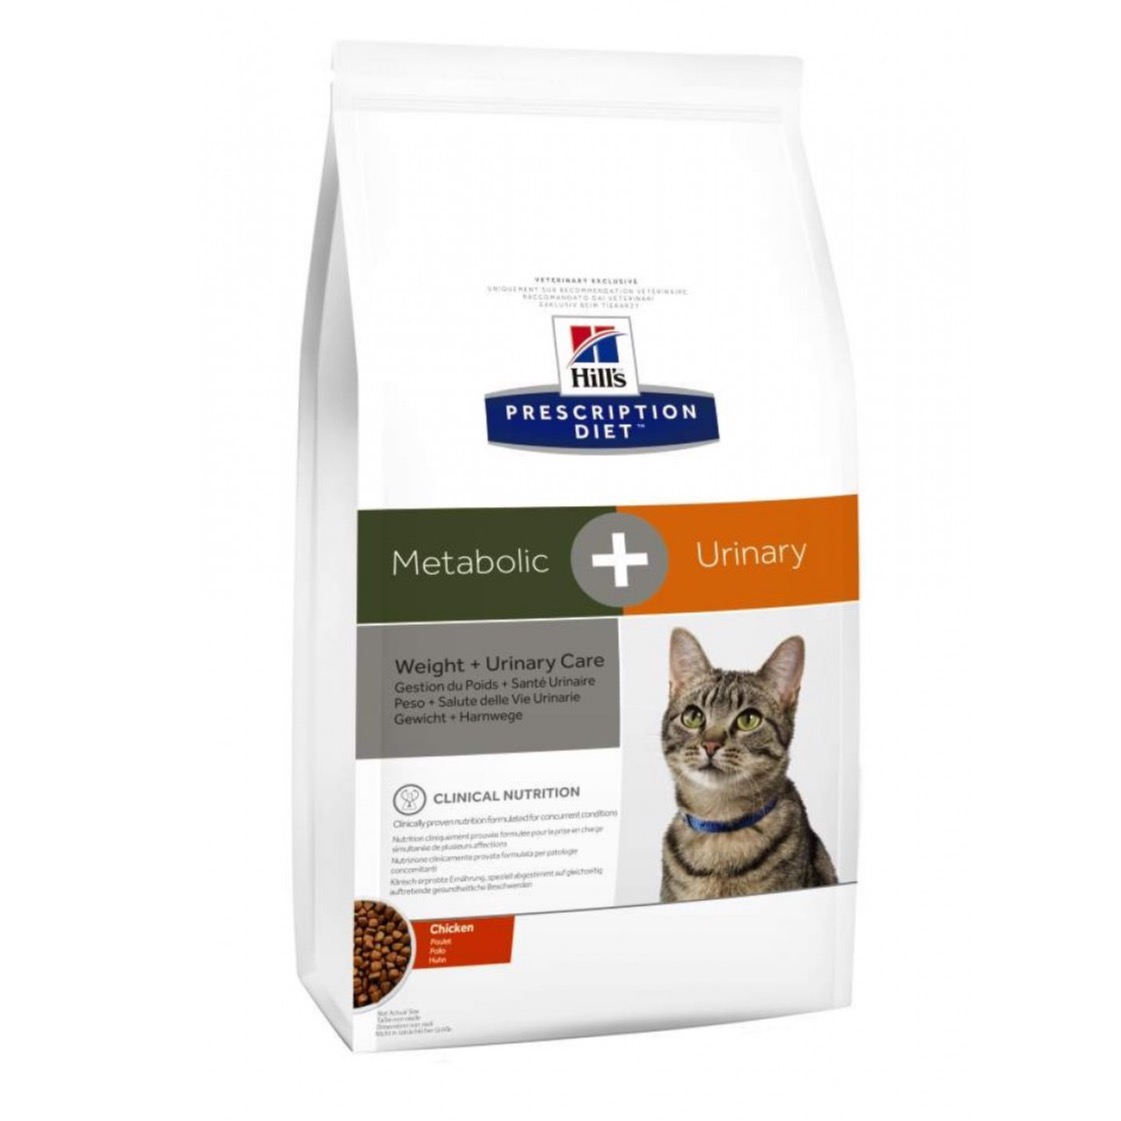 HILL S METABOLIC URINARY 1.5KG